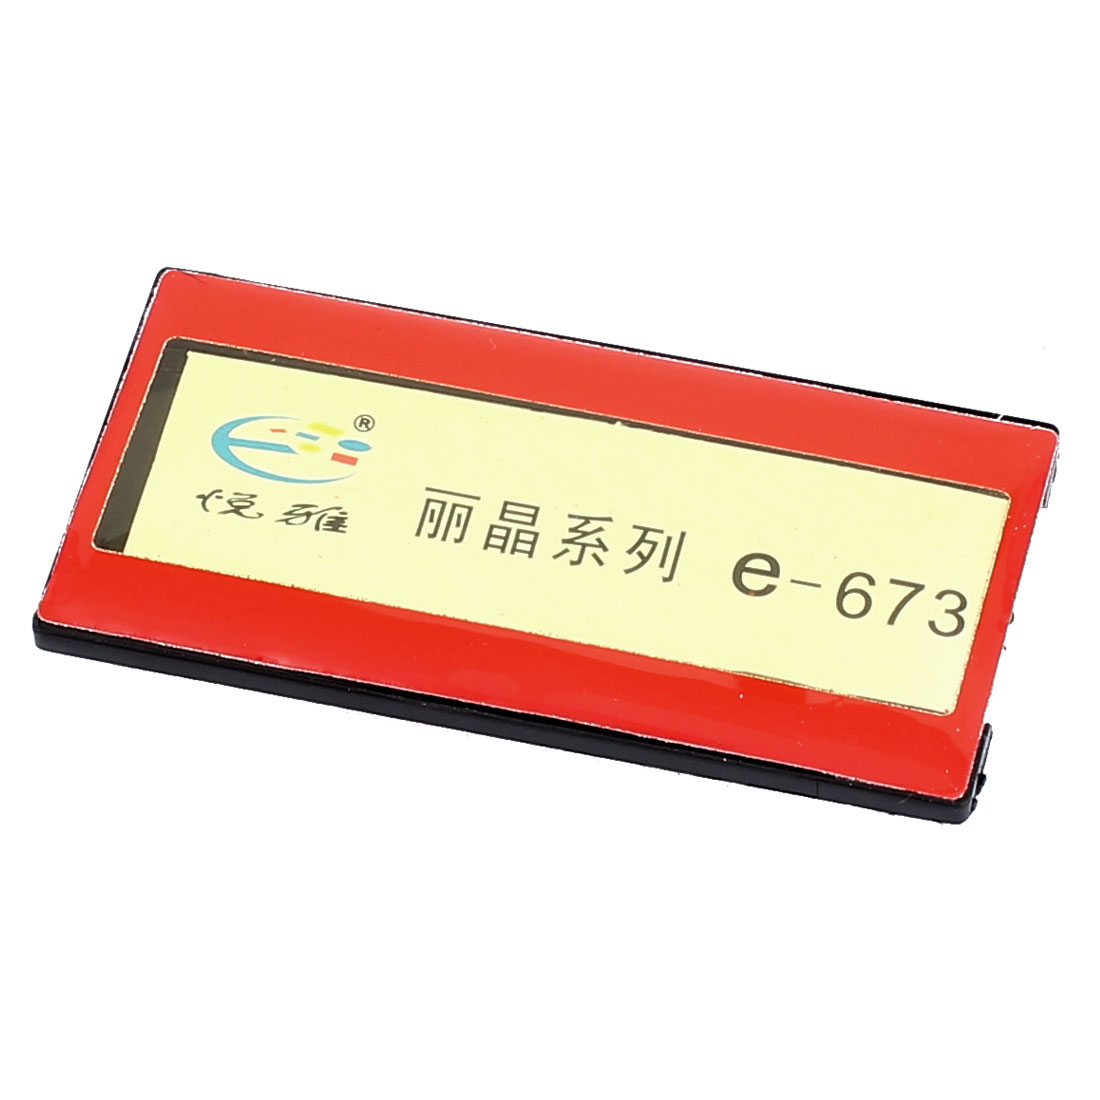 Red Plastic Horizontal Business Name Tag Clip Safetypin Holder